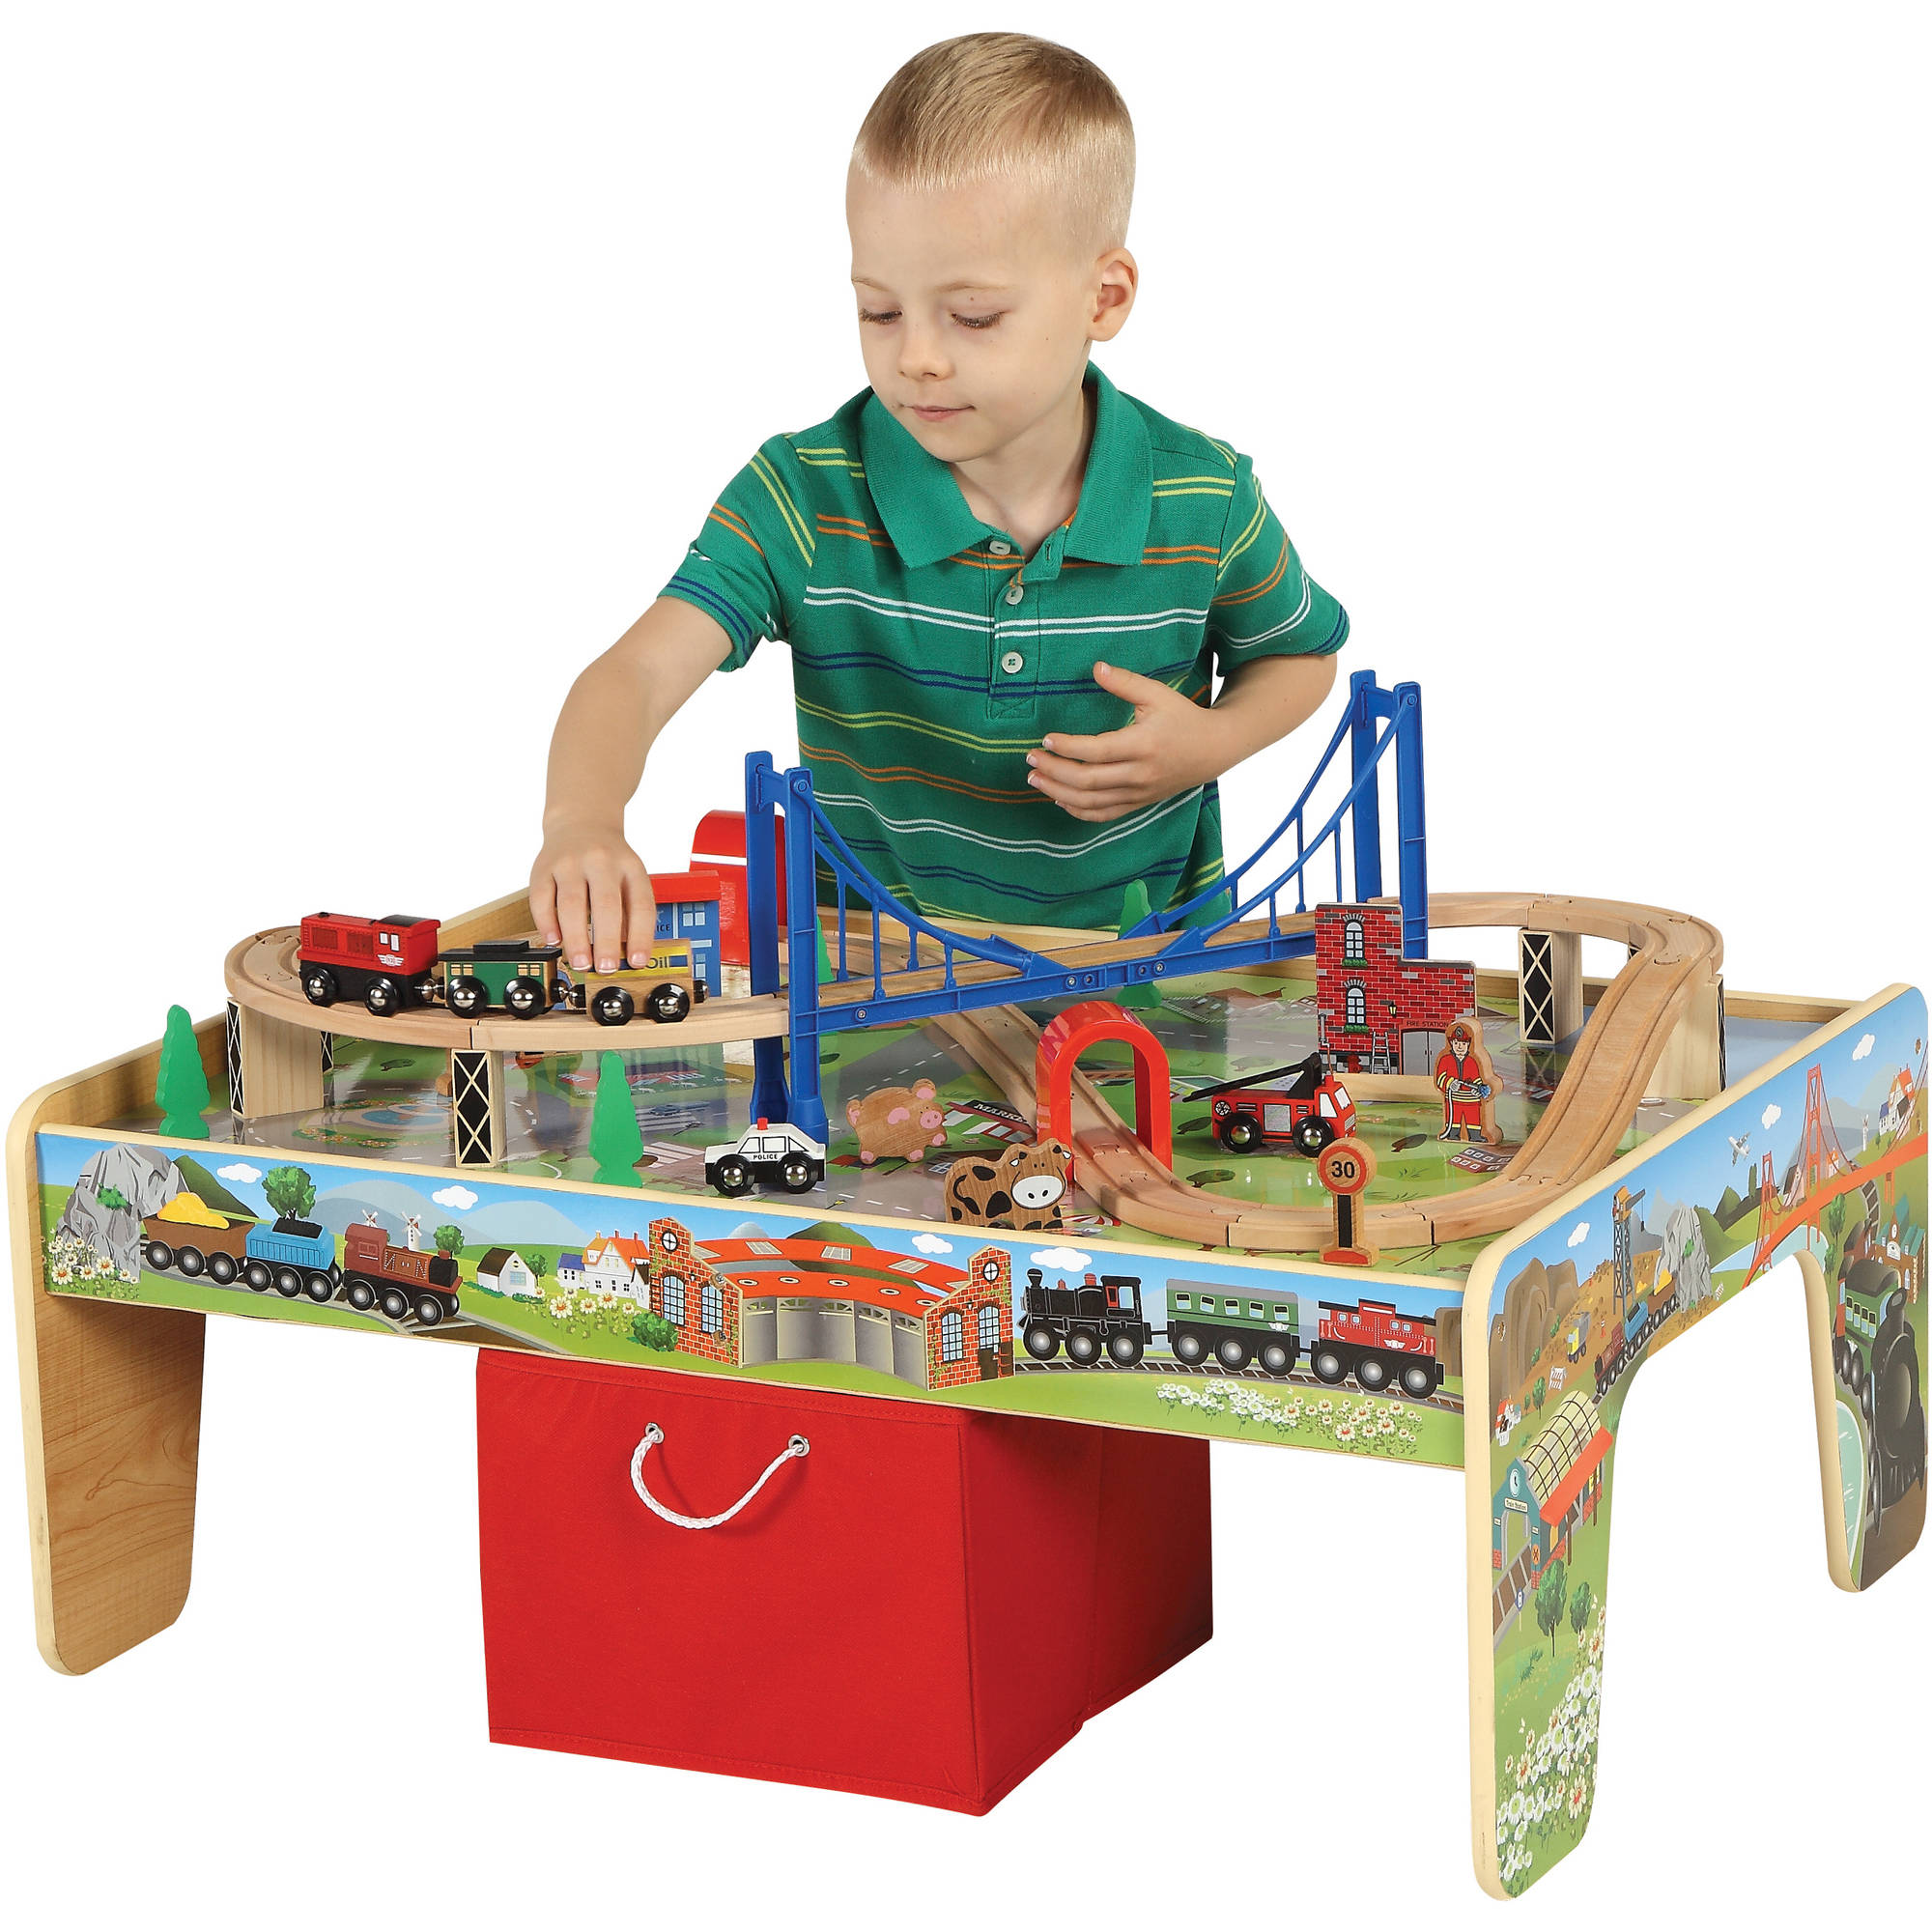 sc 1 st  Walmart & 50-Piece Train Set with 2-in-1 Activity Table - Walmart.com